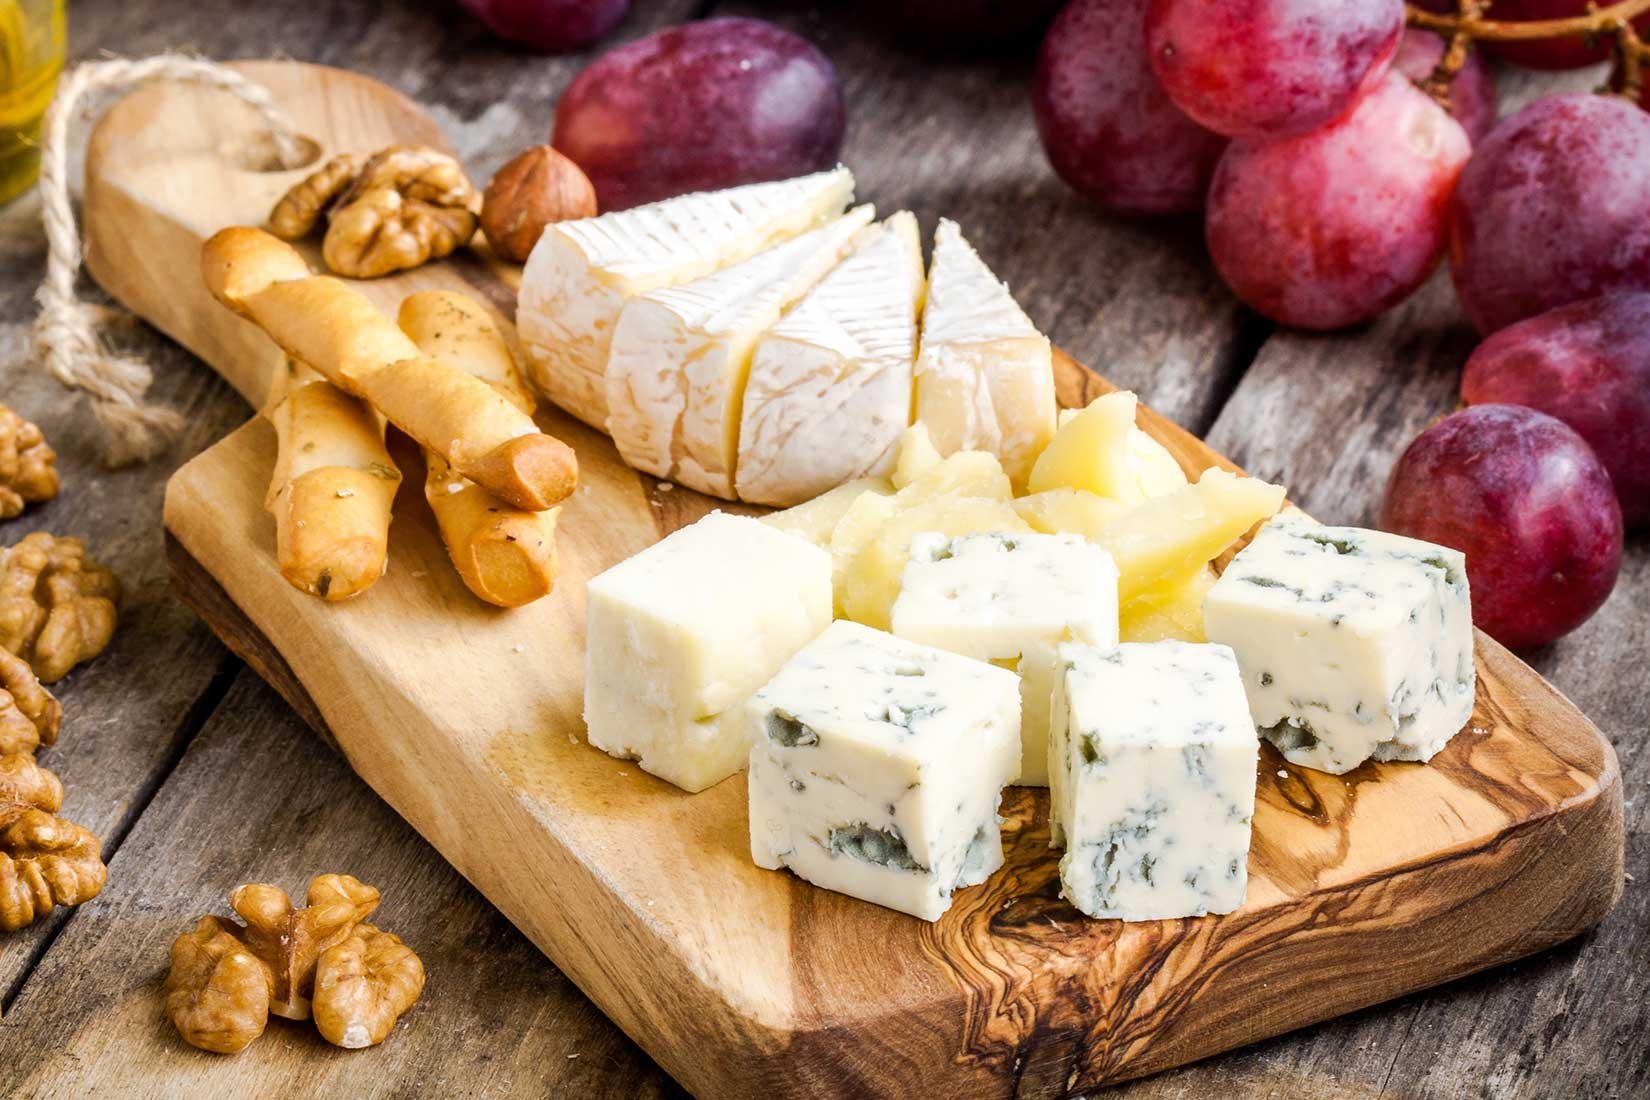 Cheese Trends to Make Your Customers Melt